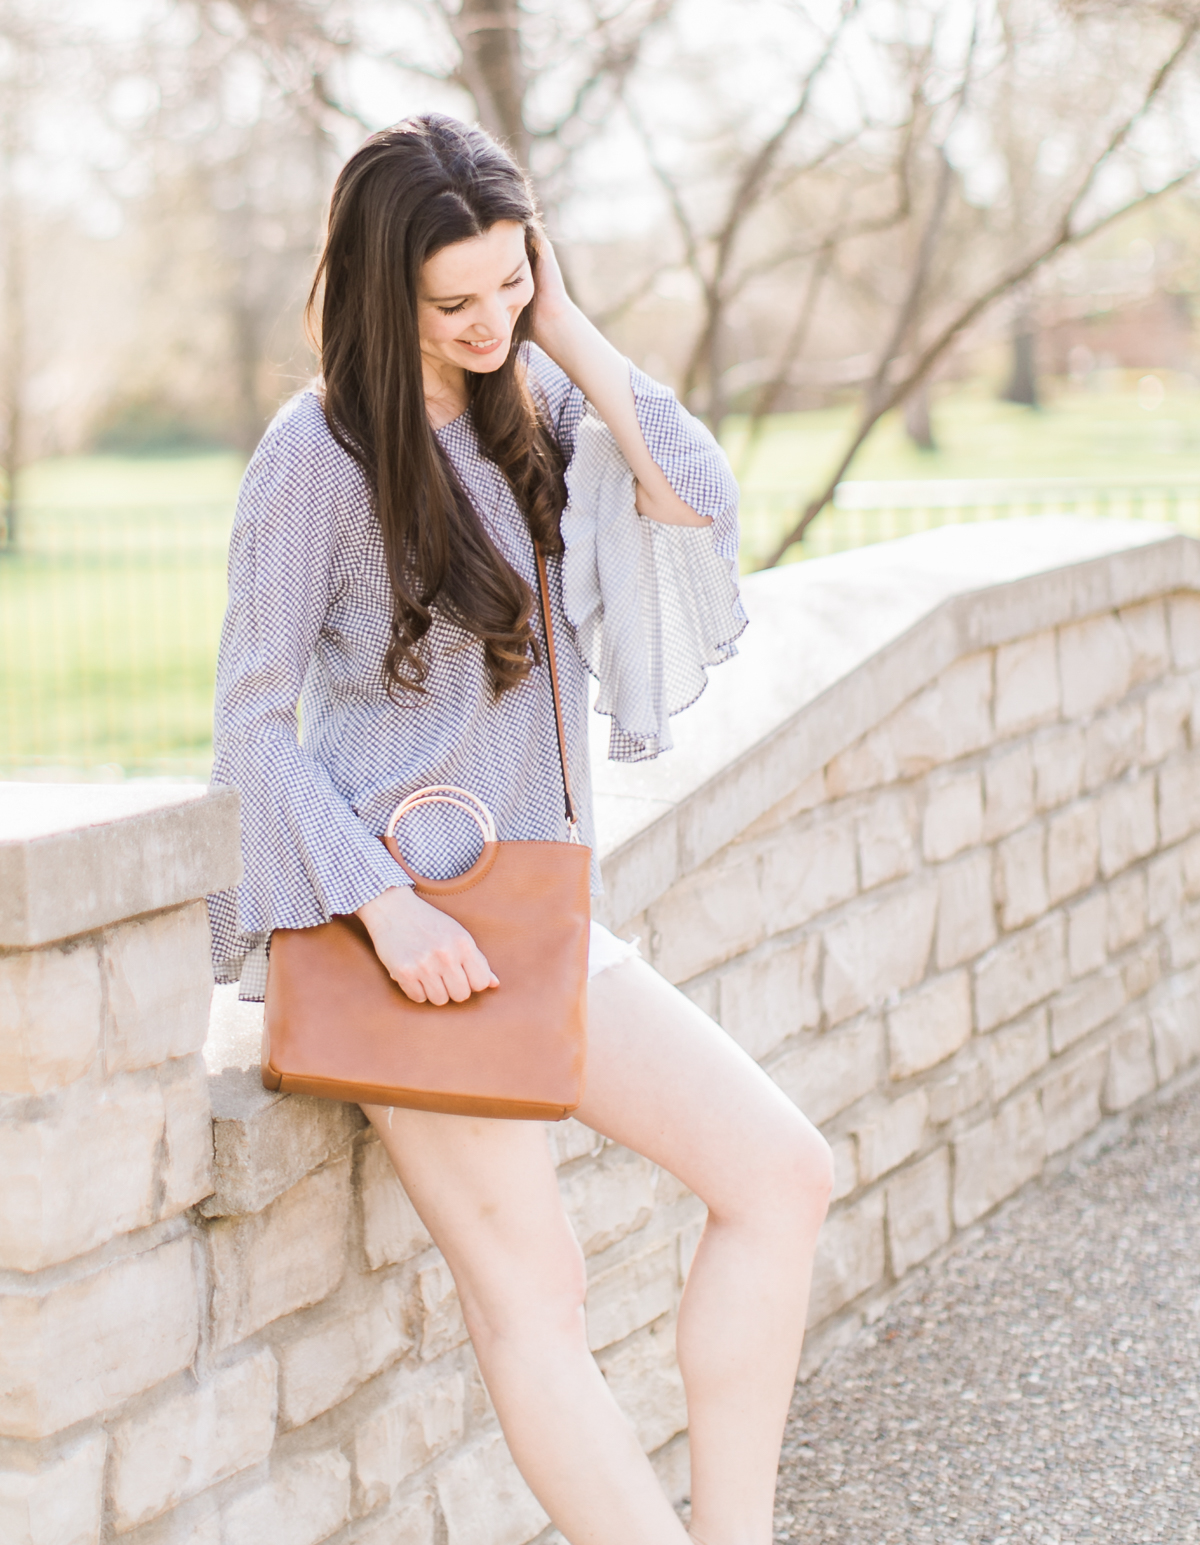 Pastel Lookbook: Spring Style Picks from Kohl's by southern fashion blogger Stephanie Ziajka from Diary of a Debutante, top kohl's picks, spring wardrobe essentials, cute spring clothes for women, cute spring outfits, cute spring outfits for women, LC Lauren Conrad Bell Sleeve Top in Gingham Liz Lavender, Levi's High Waist Jean Shorts, LC Lauren Conrad Ring Convertible Crossbody Bag, Madden NYC Ellsaa Wedges